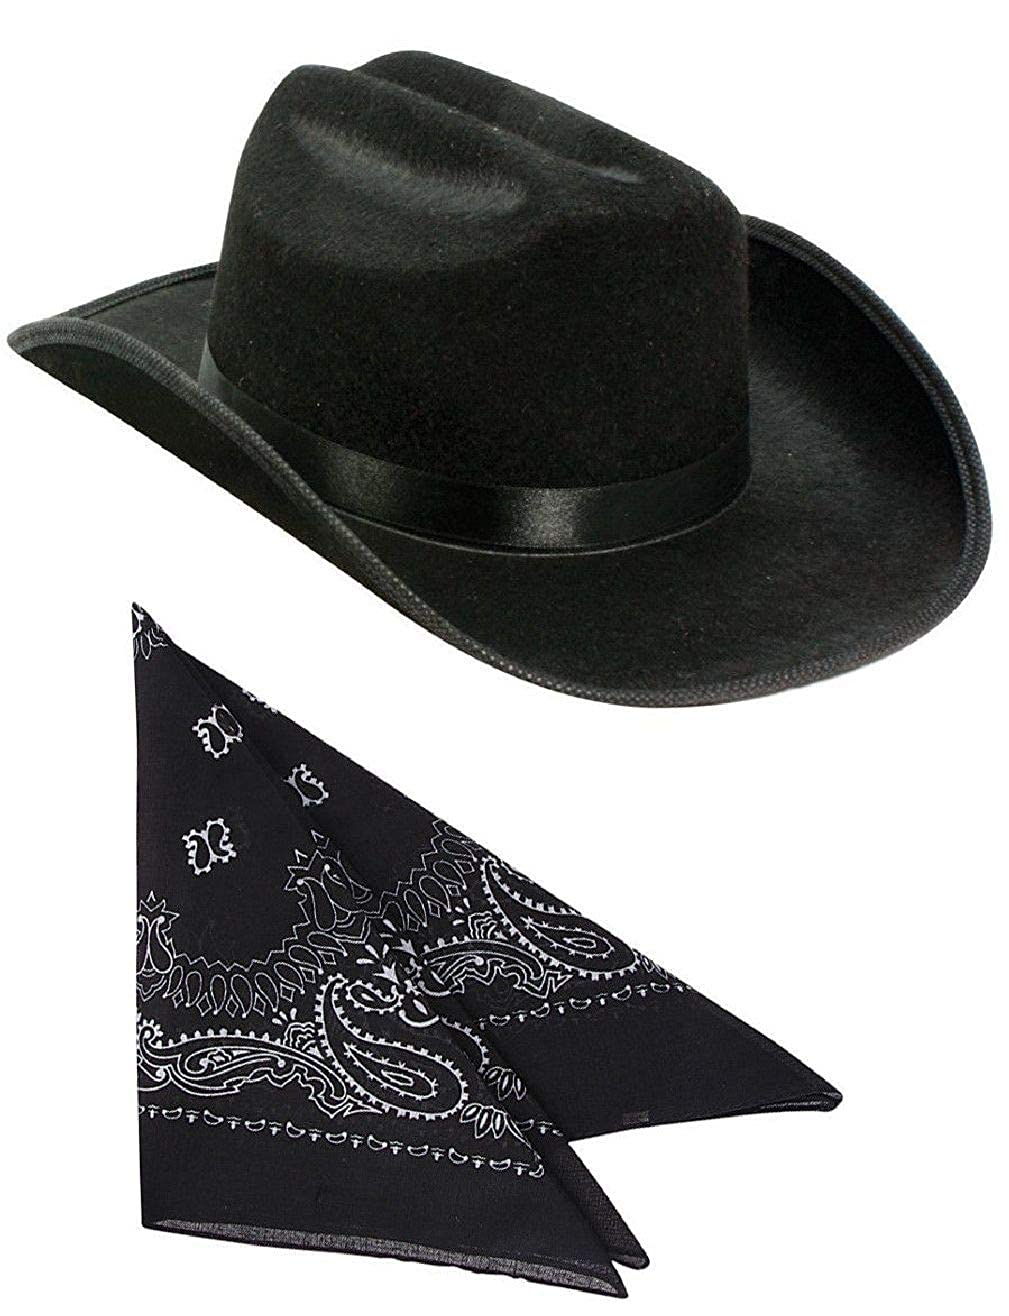 Amazon.com  Kids Black Cowboy Outlaw Felt Hat and Bandana Play Set Costume  Accessory  Clothing 069c8167a10